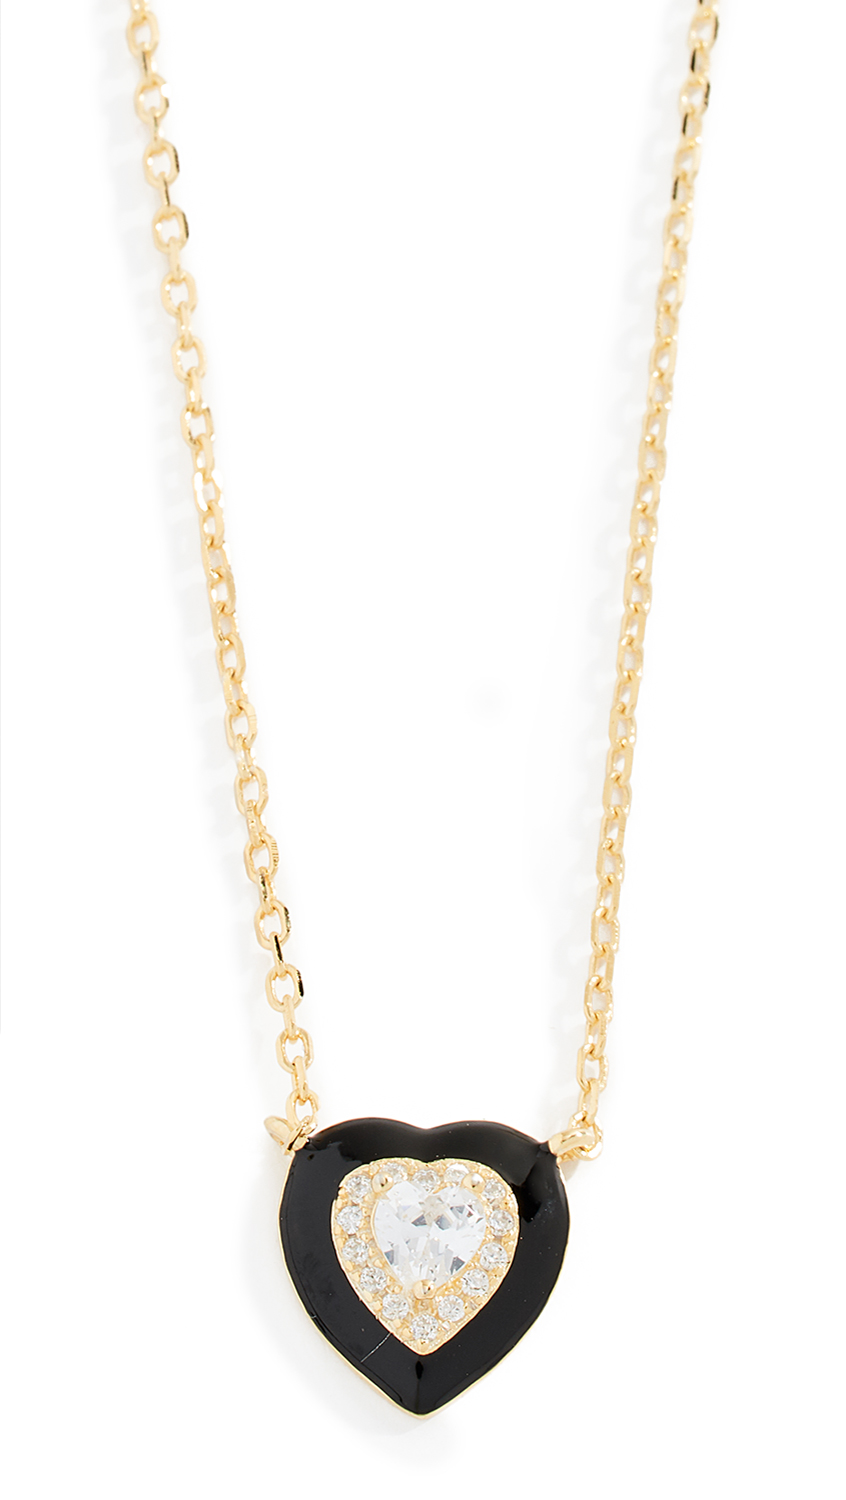 KINDRED Collette Necklace in Yellow Gold